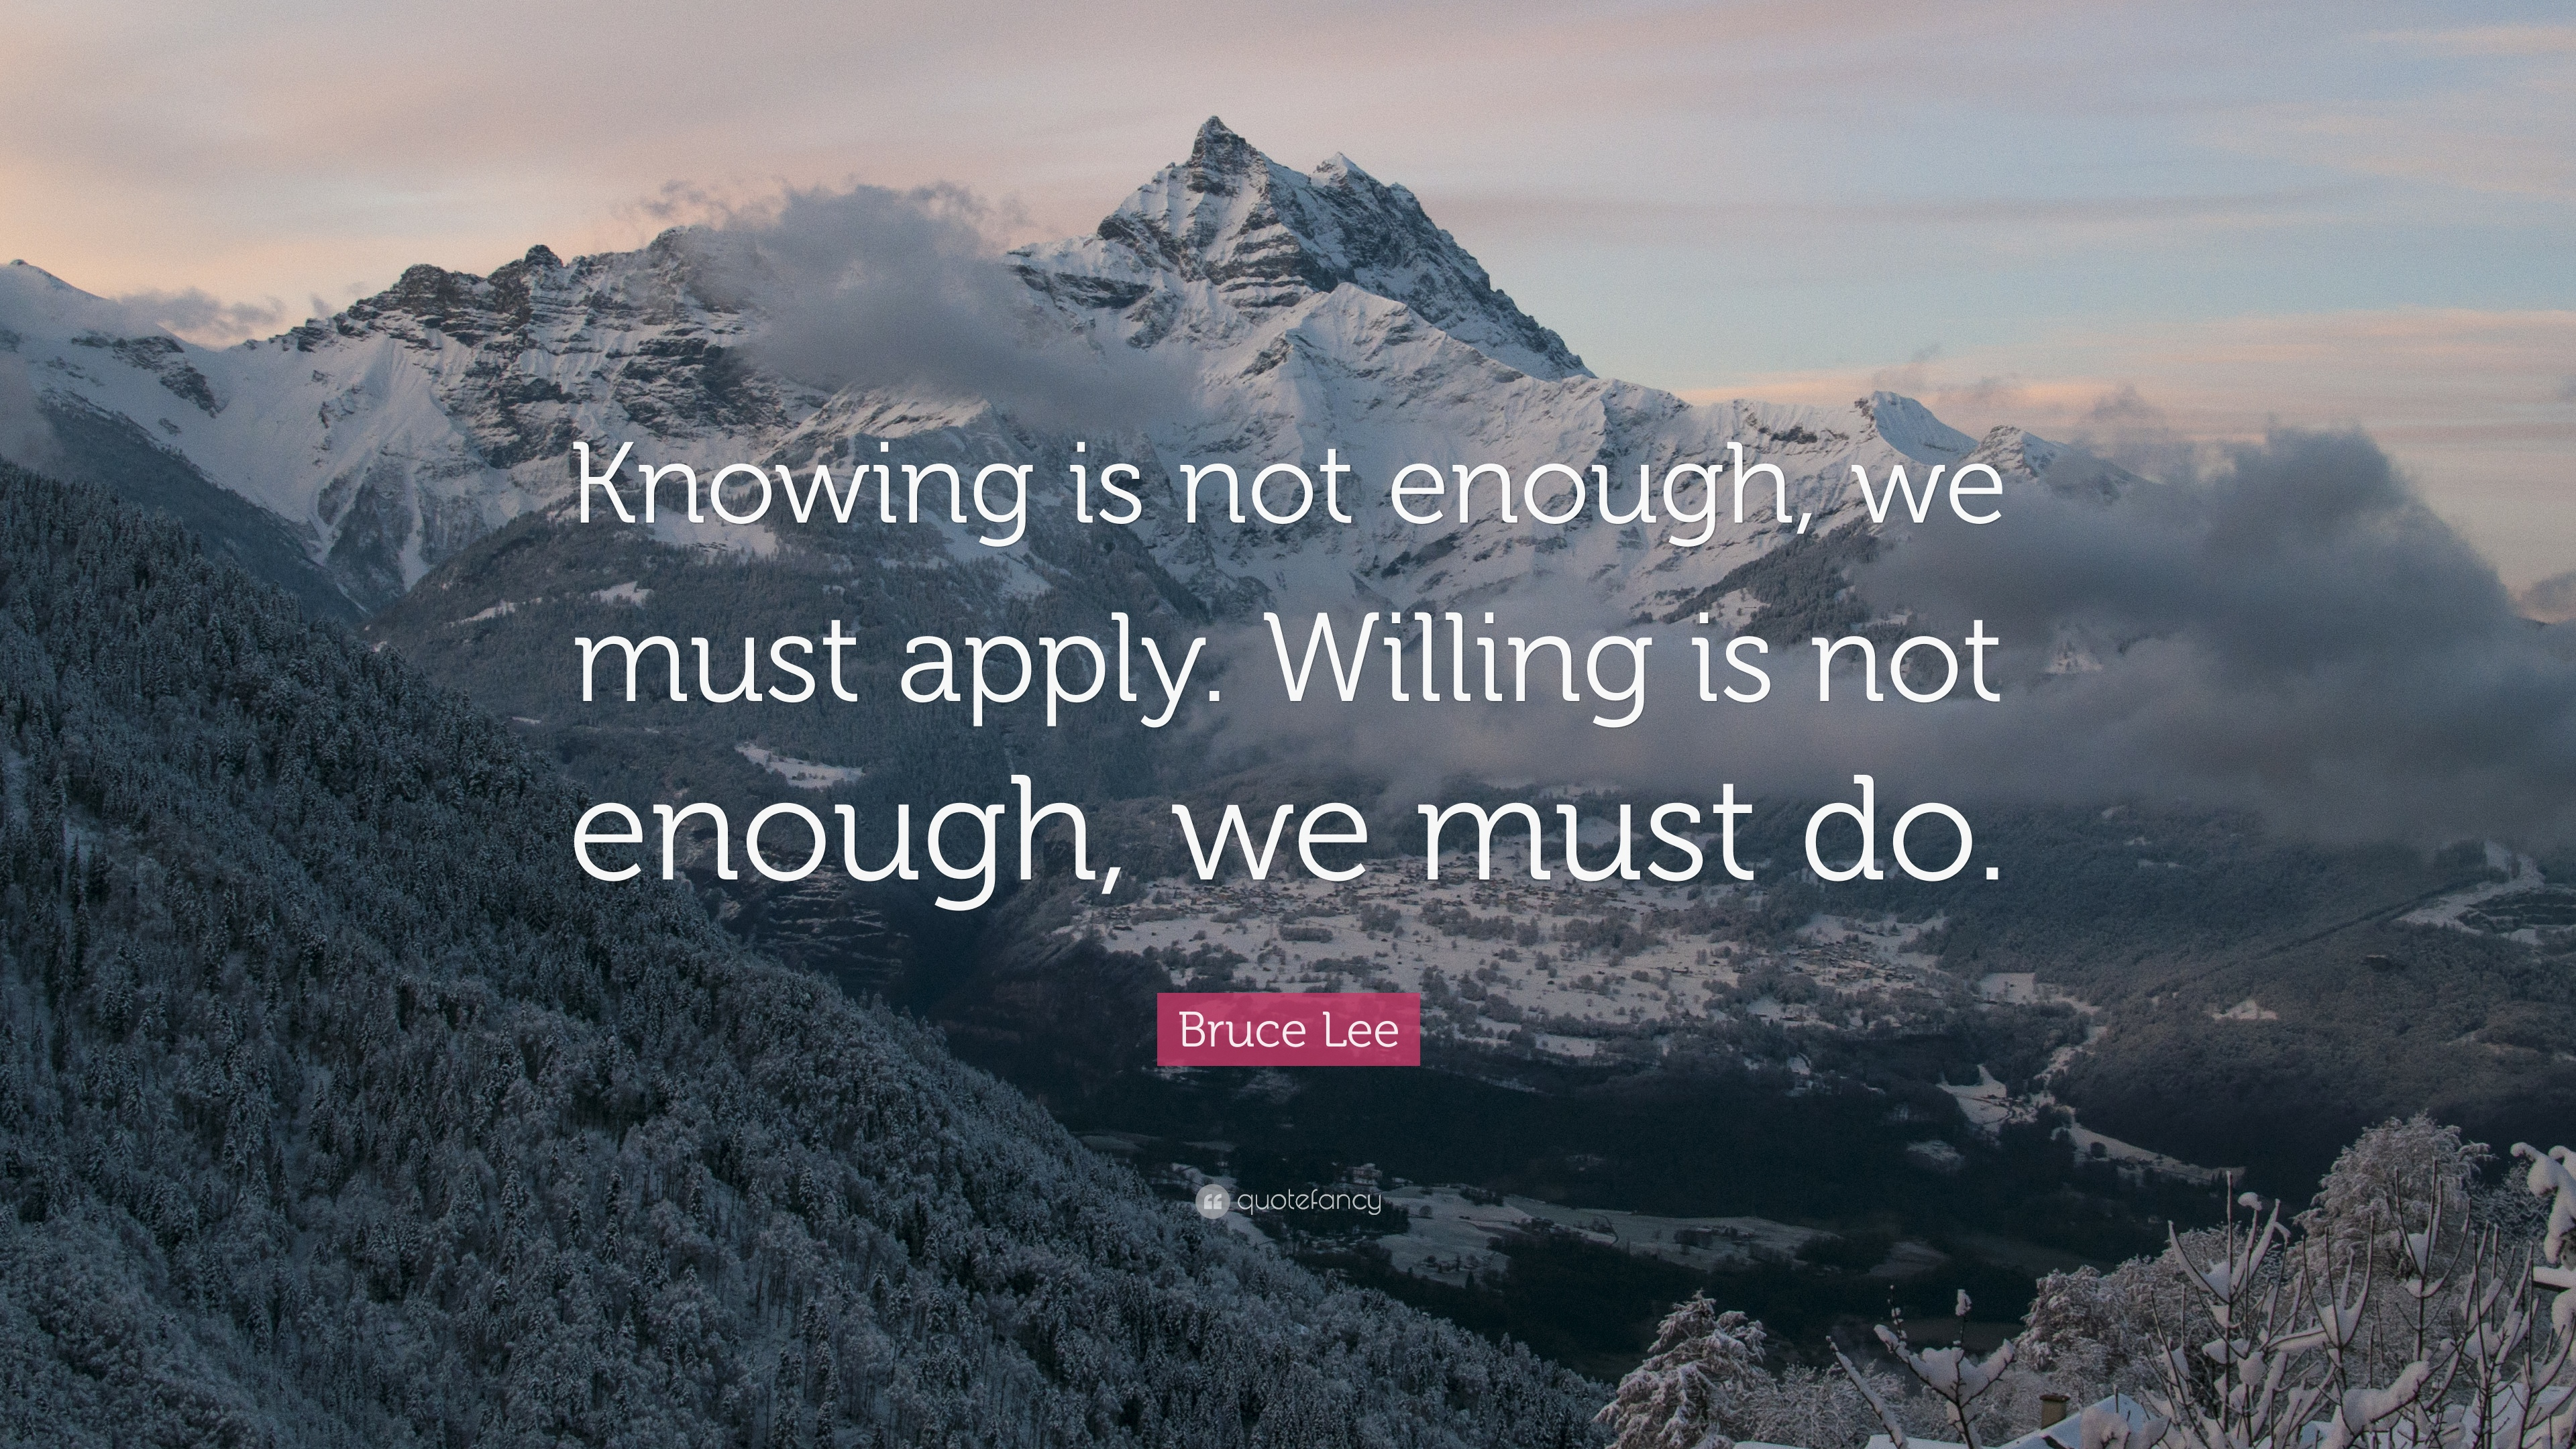 bruce lee quote knowing is not enough we must apply willing is